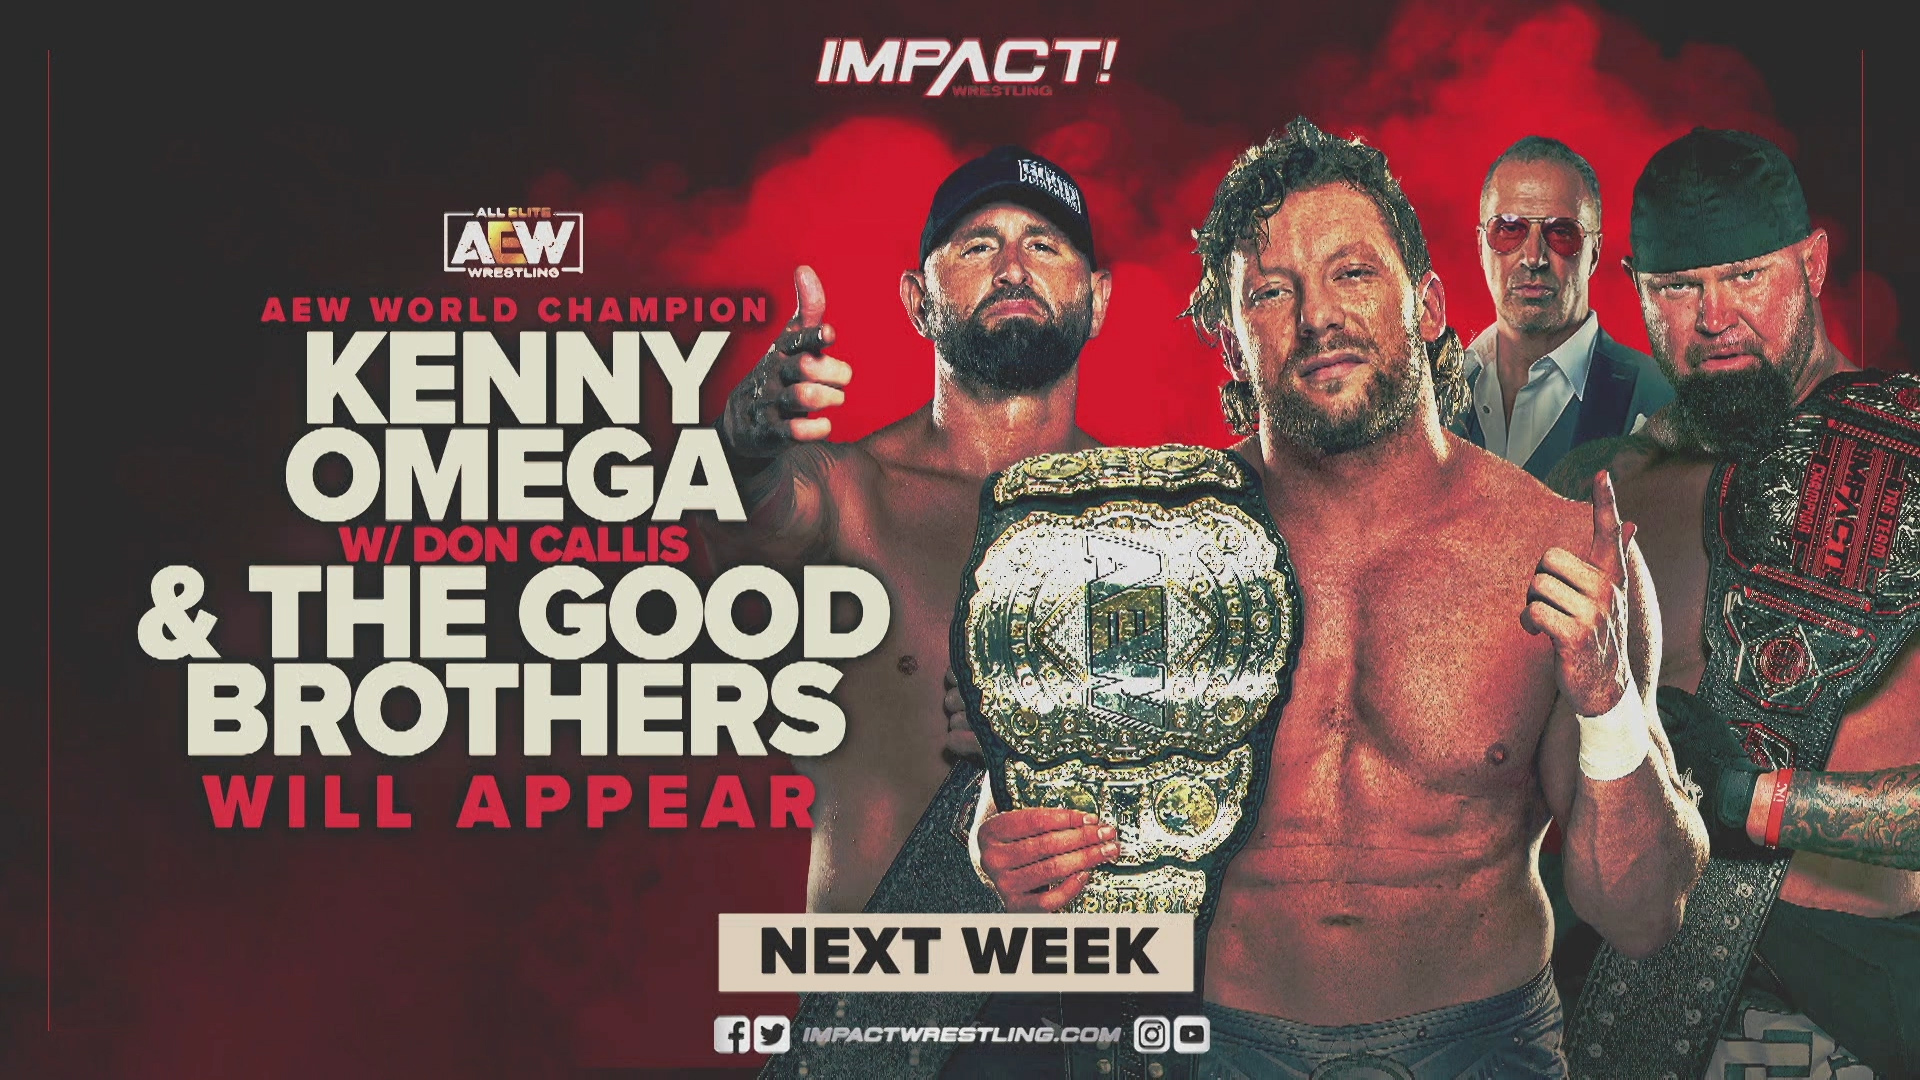 IMPACT! Kicks Off 2021 in a Big Way – IMPACT Wrestling